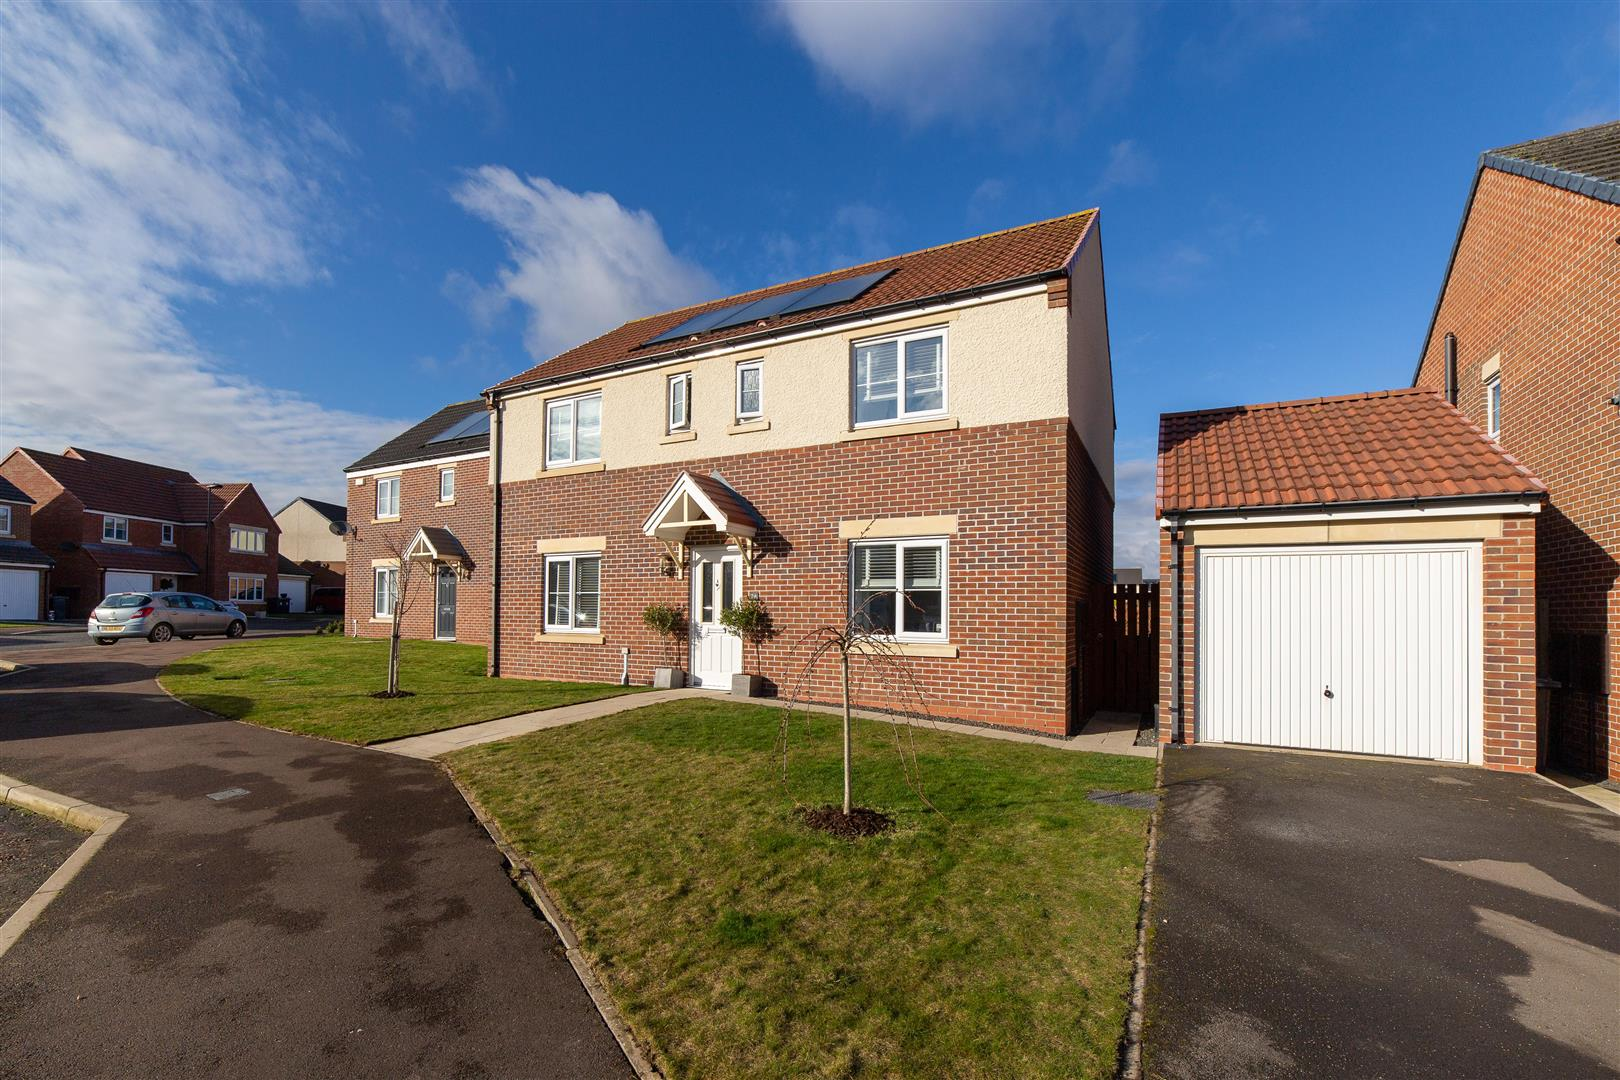 4 bed detached house for sale in Foxglove Place, Wideopen, NE13